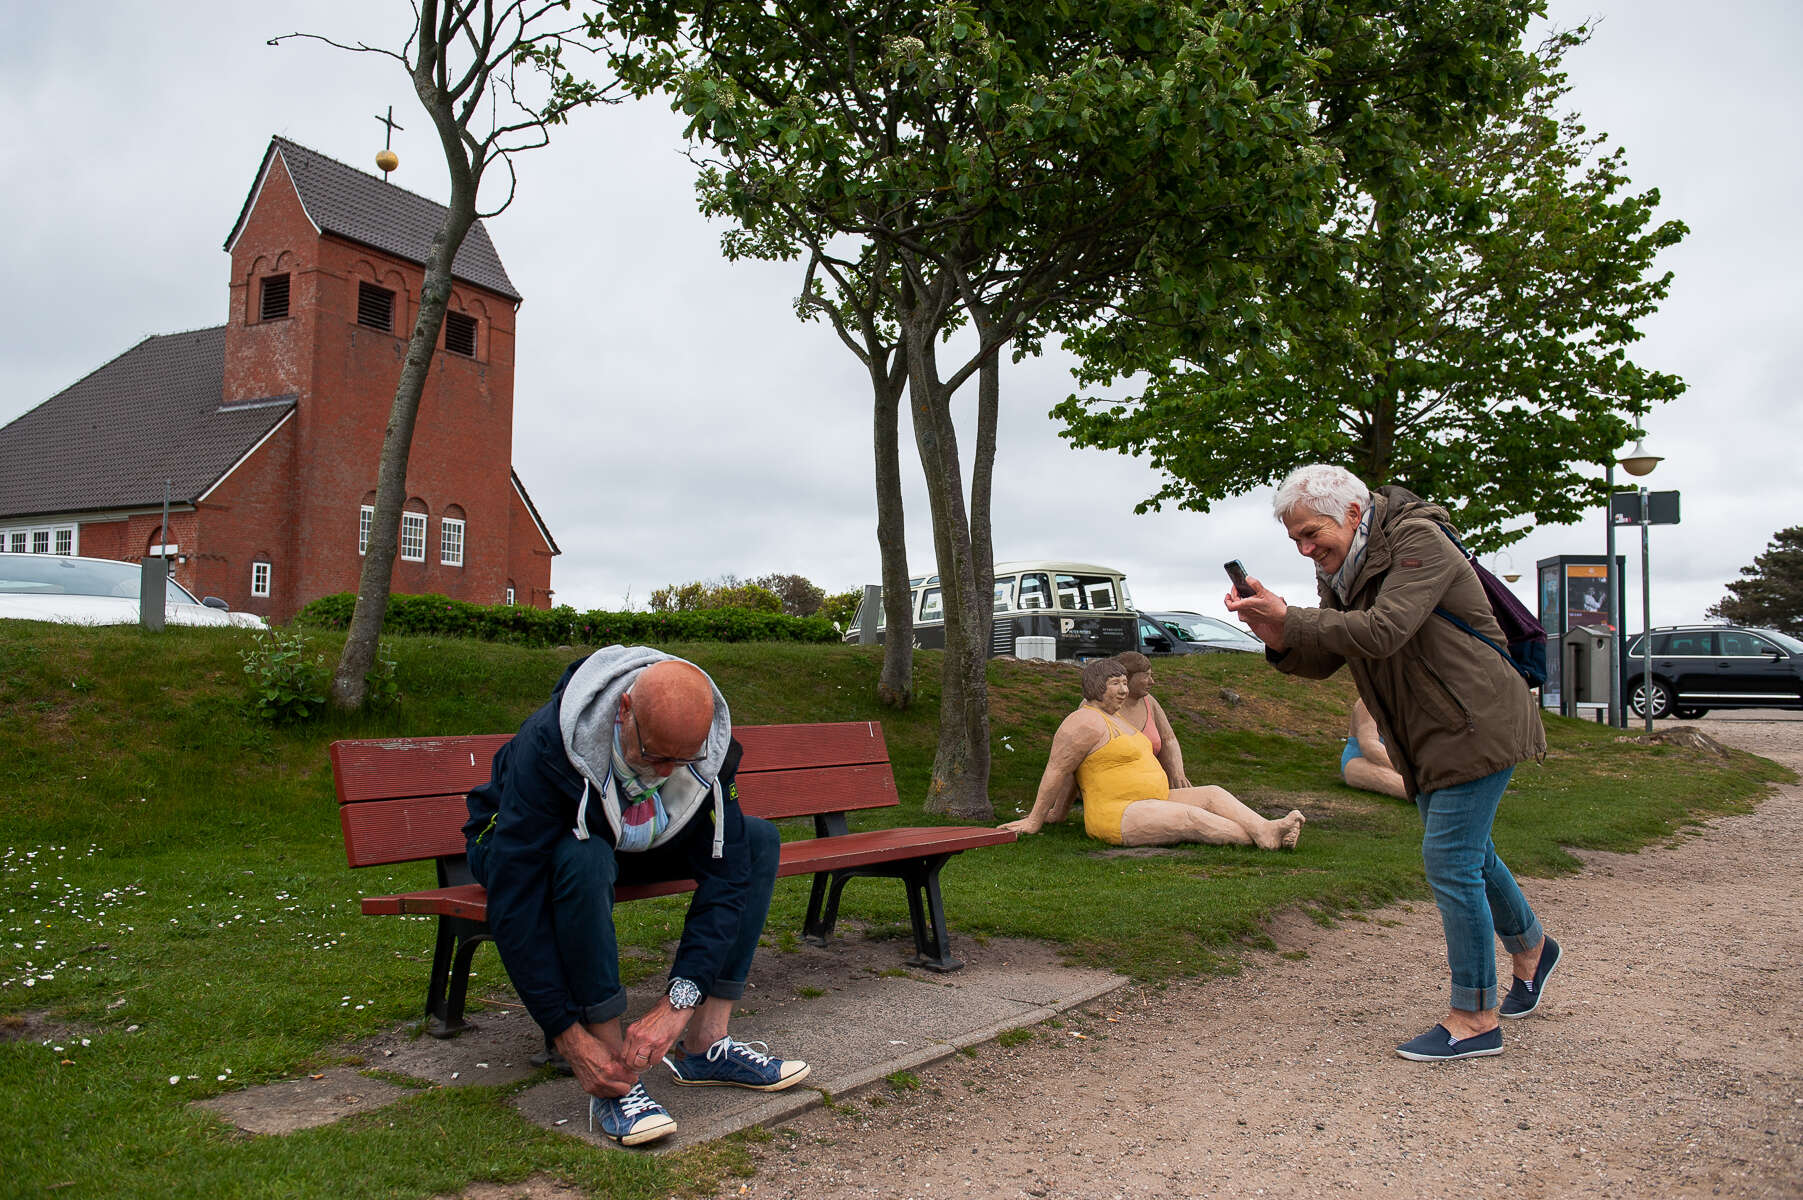 Having reached the pond in Wenningstedt on their way home from the Braderuper Heide, mom photographs dad fastening his shoelaces. Sylt, Germany, May 25, 2019.